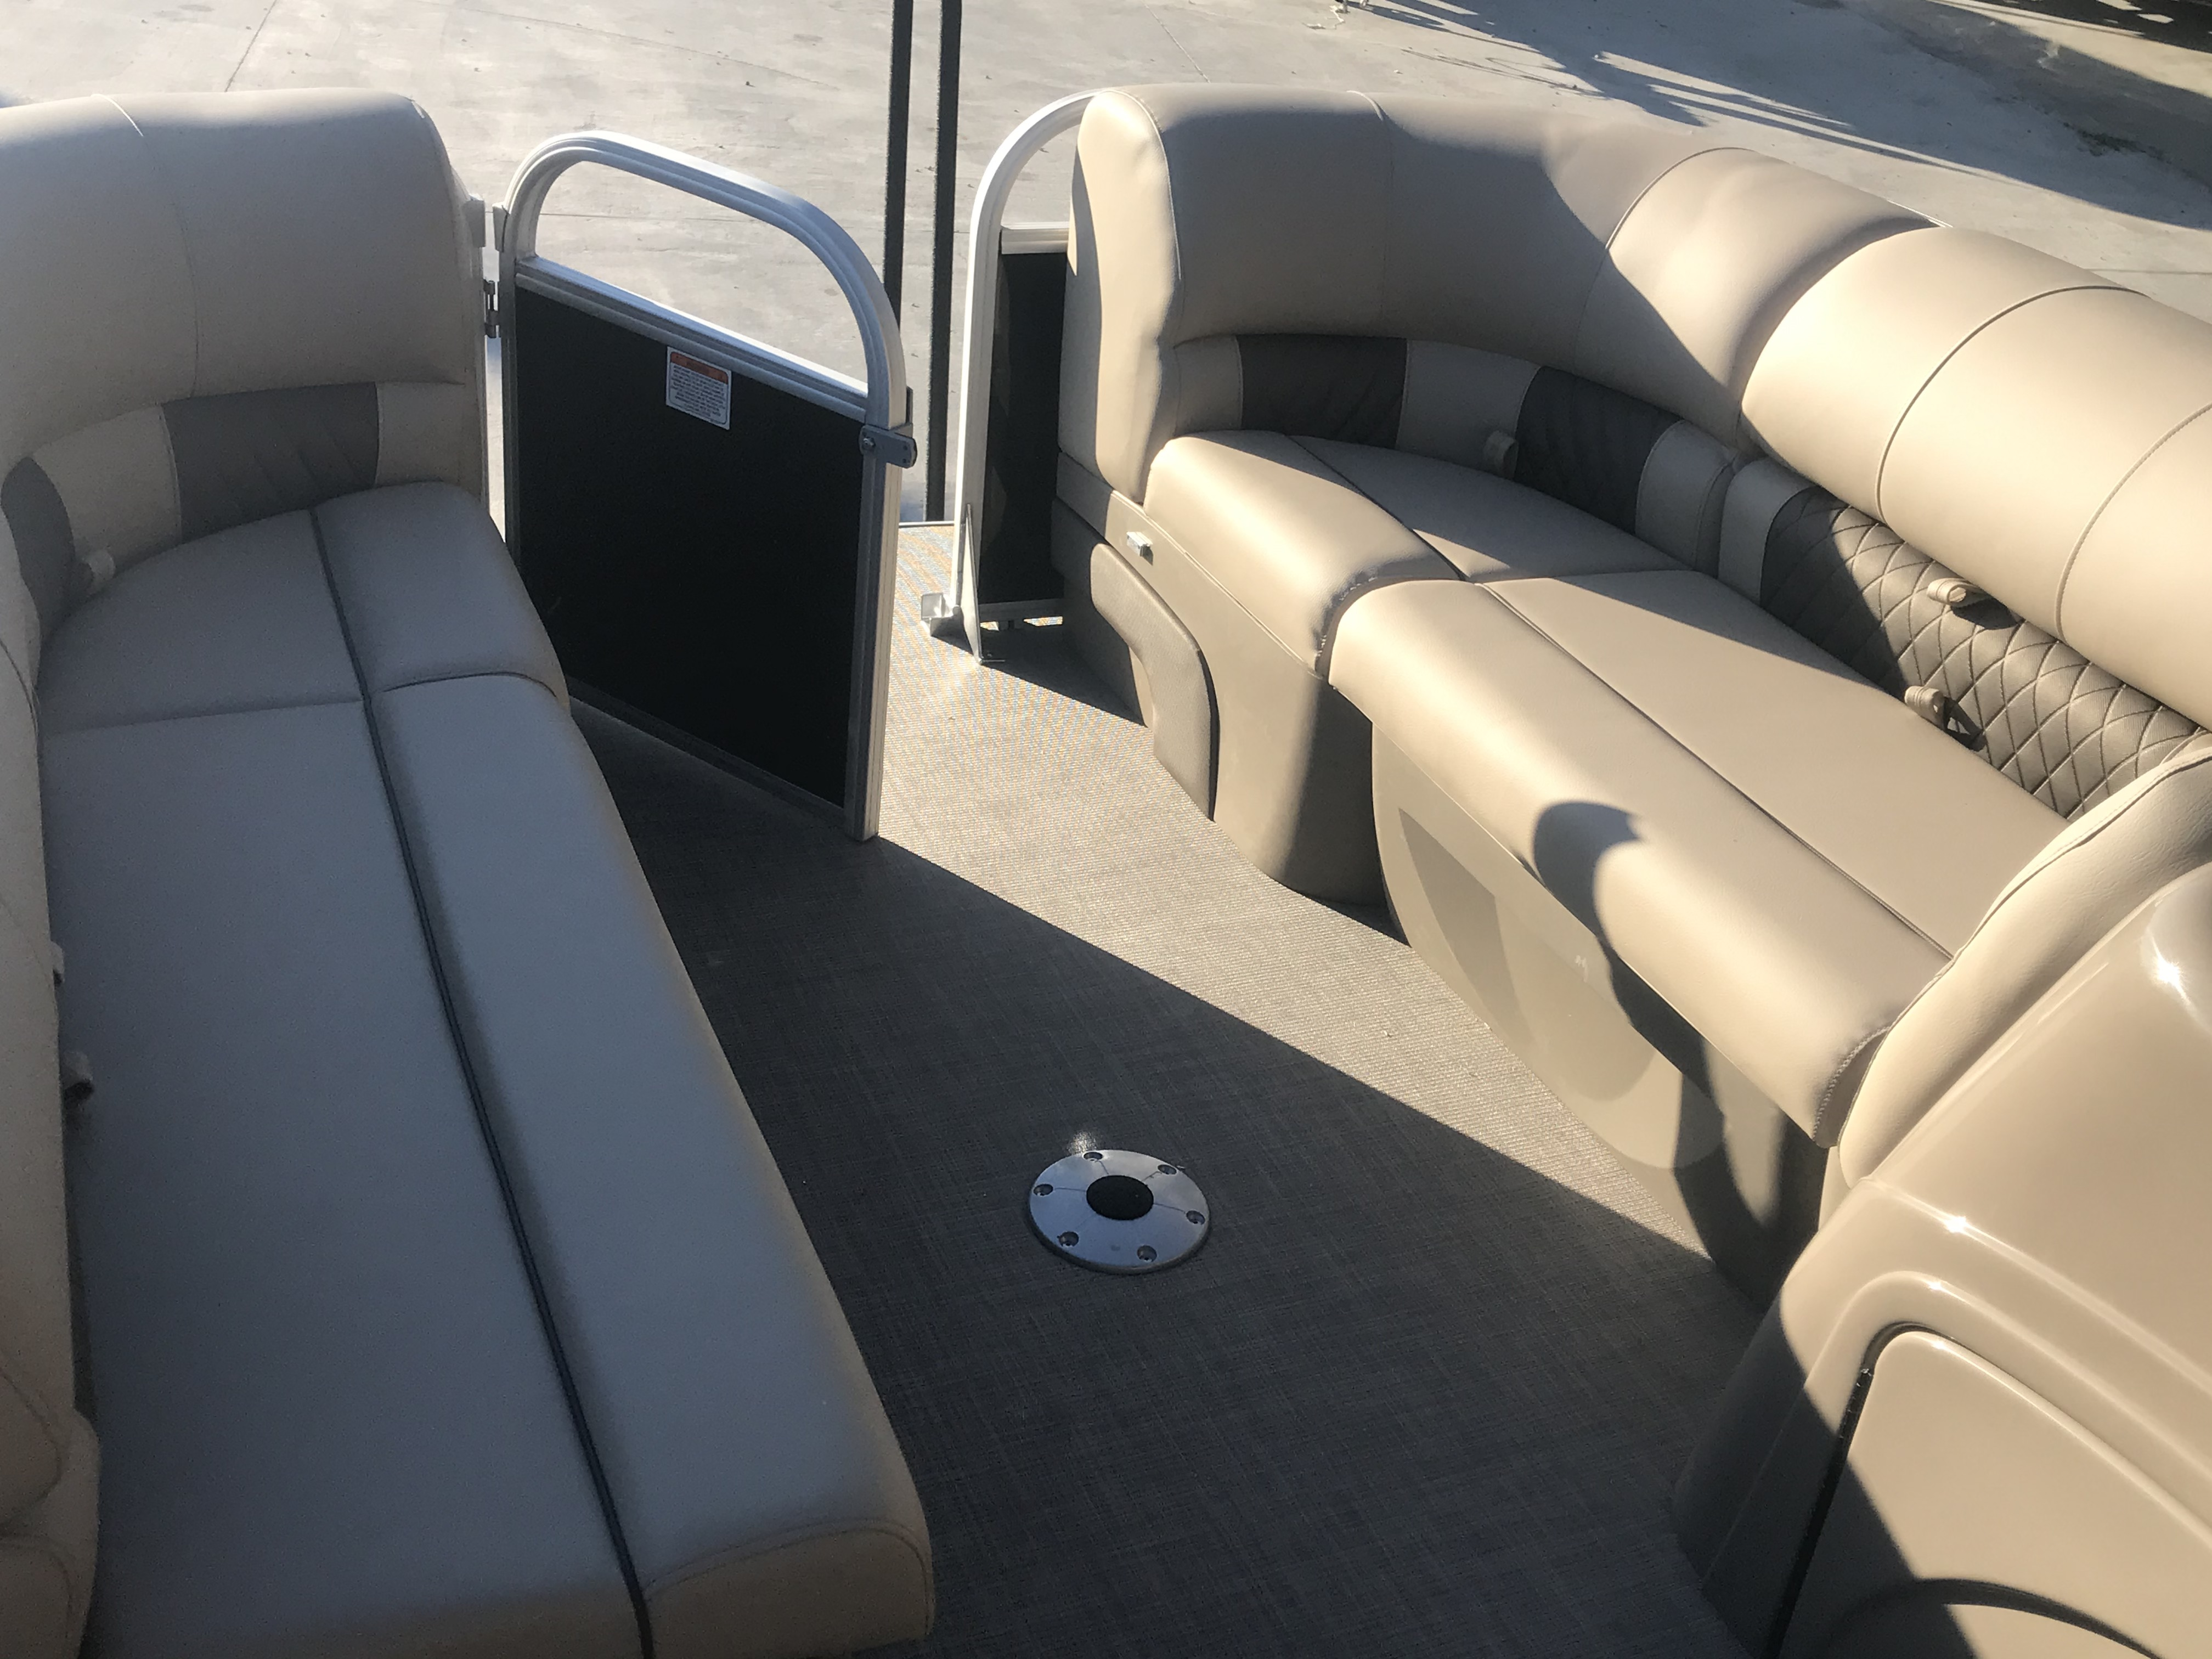 2022 Sun Tracker boat for sale, model of the boat is 22 Party Barge DLX & Image # 10 of 15